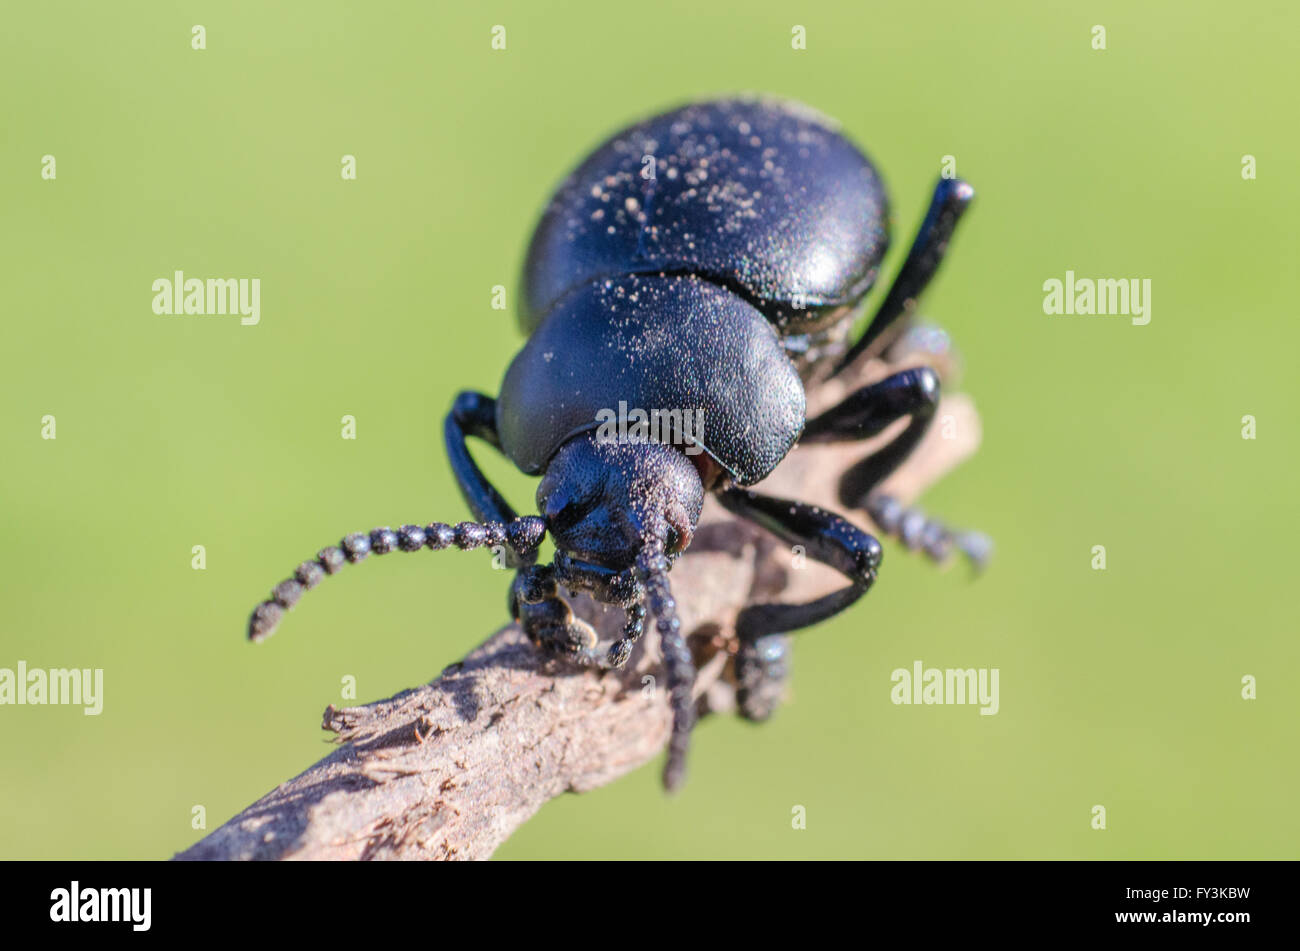 Beetle walking on a stick - Stock Image